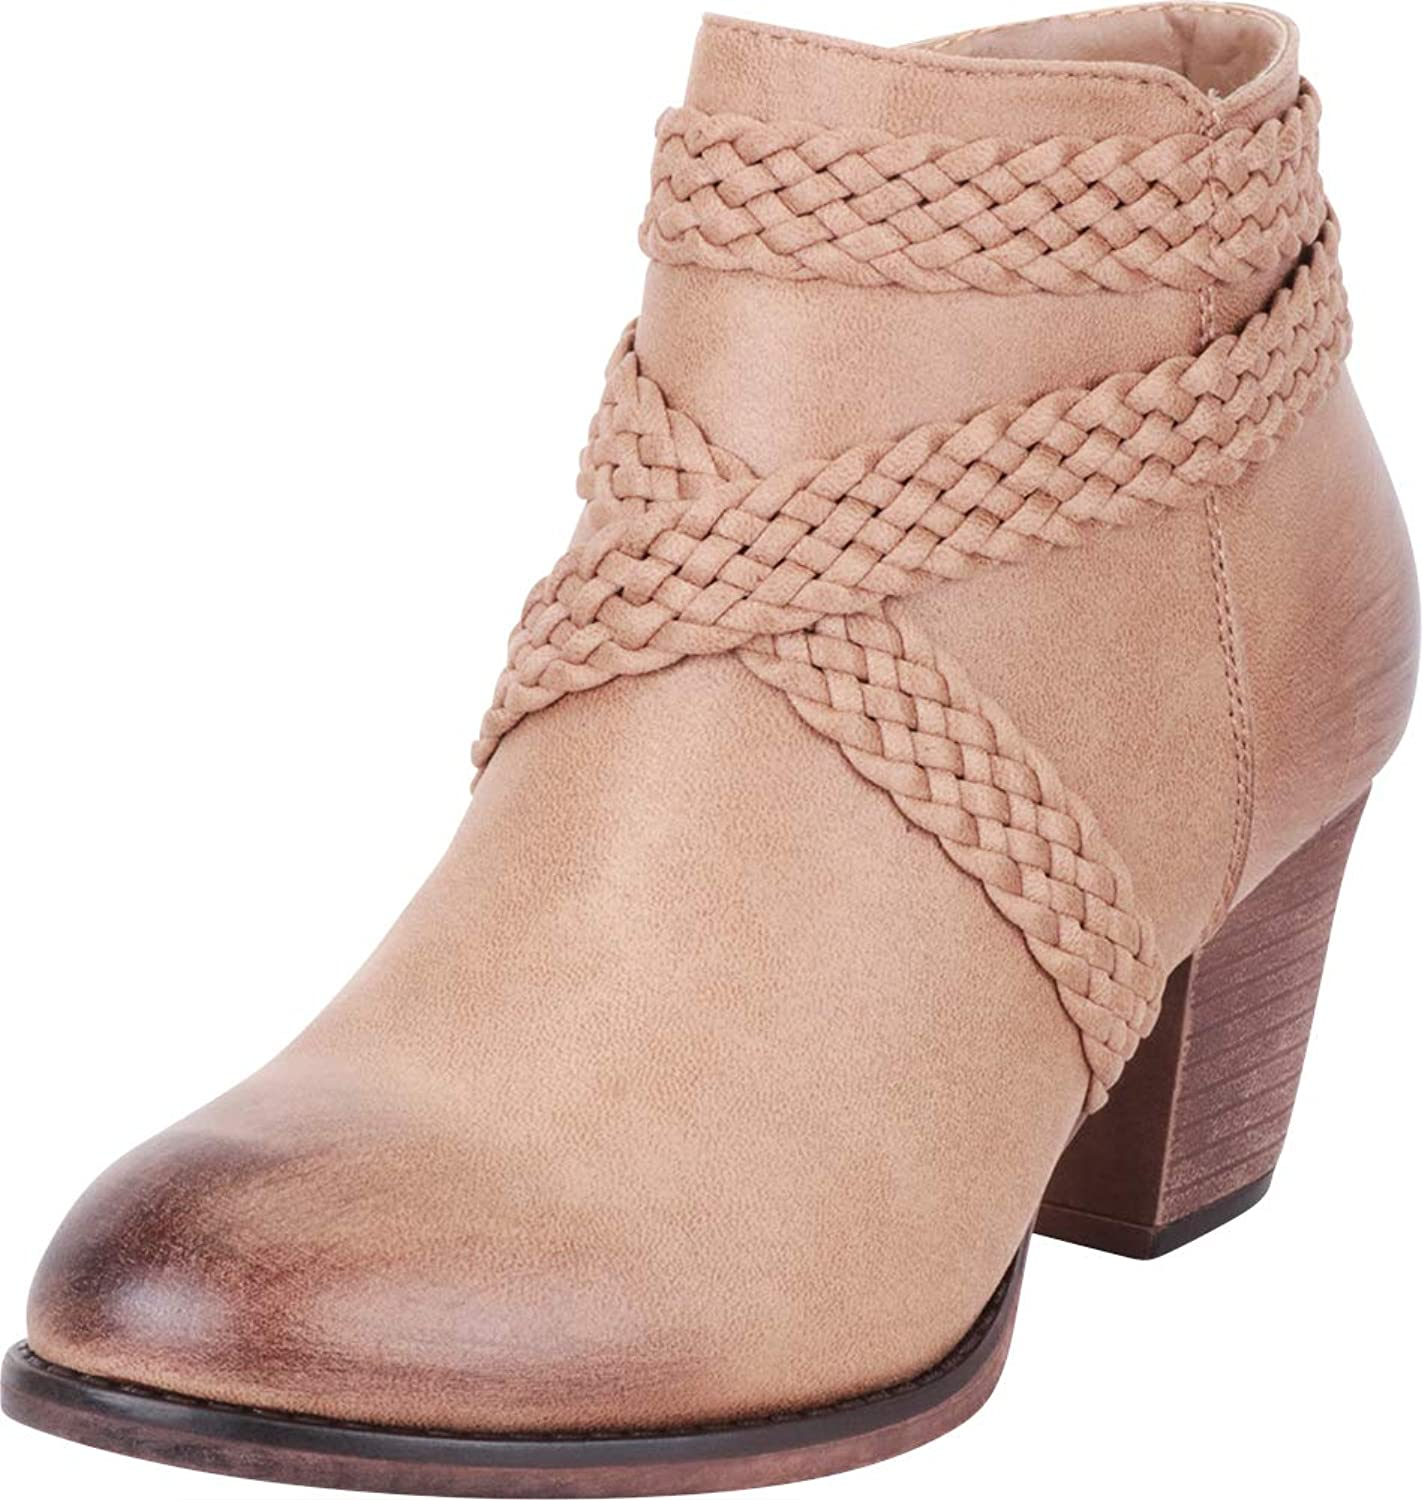 Cambridge Select Women's Distressed Woven Braid Crisscross Strappy Stacked High Heel Ankle Bootie